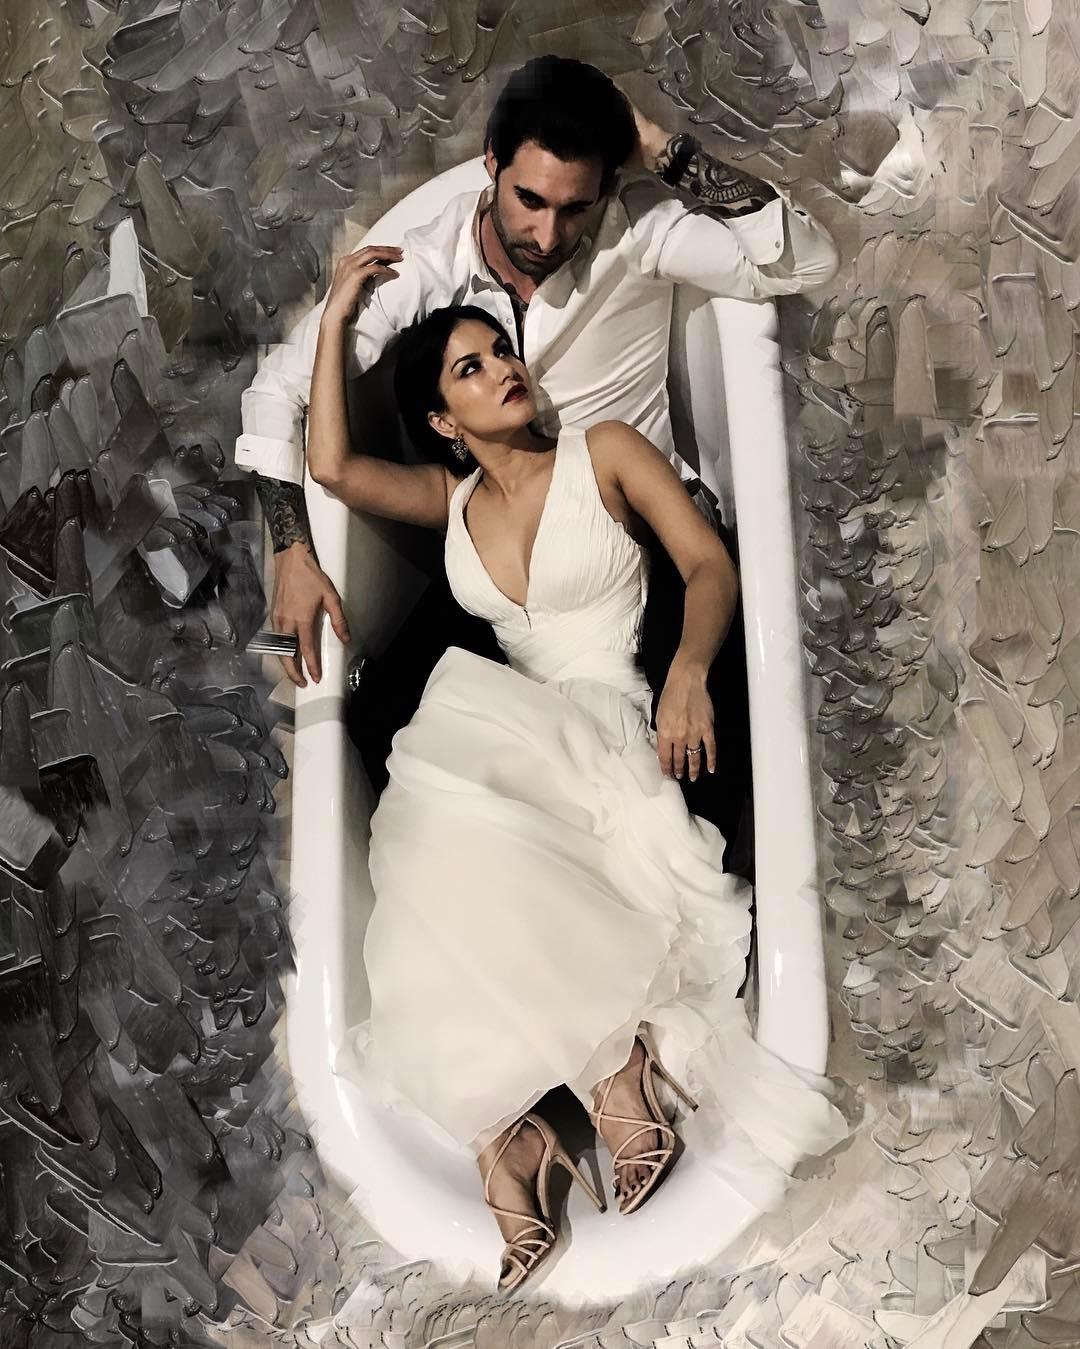 Sunny Leone With Hubby Daniel Weber In A Bathtub Is The